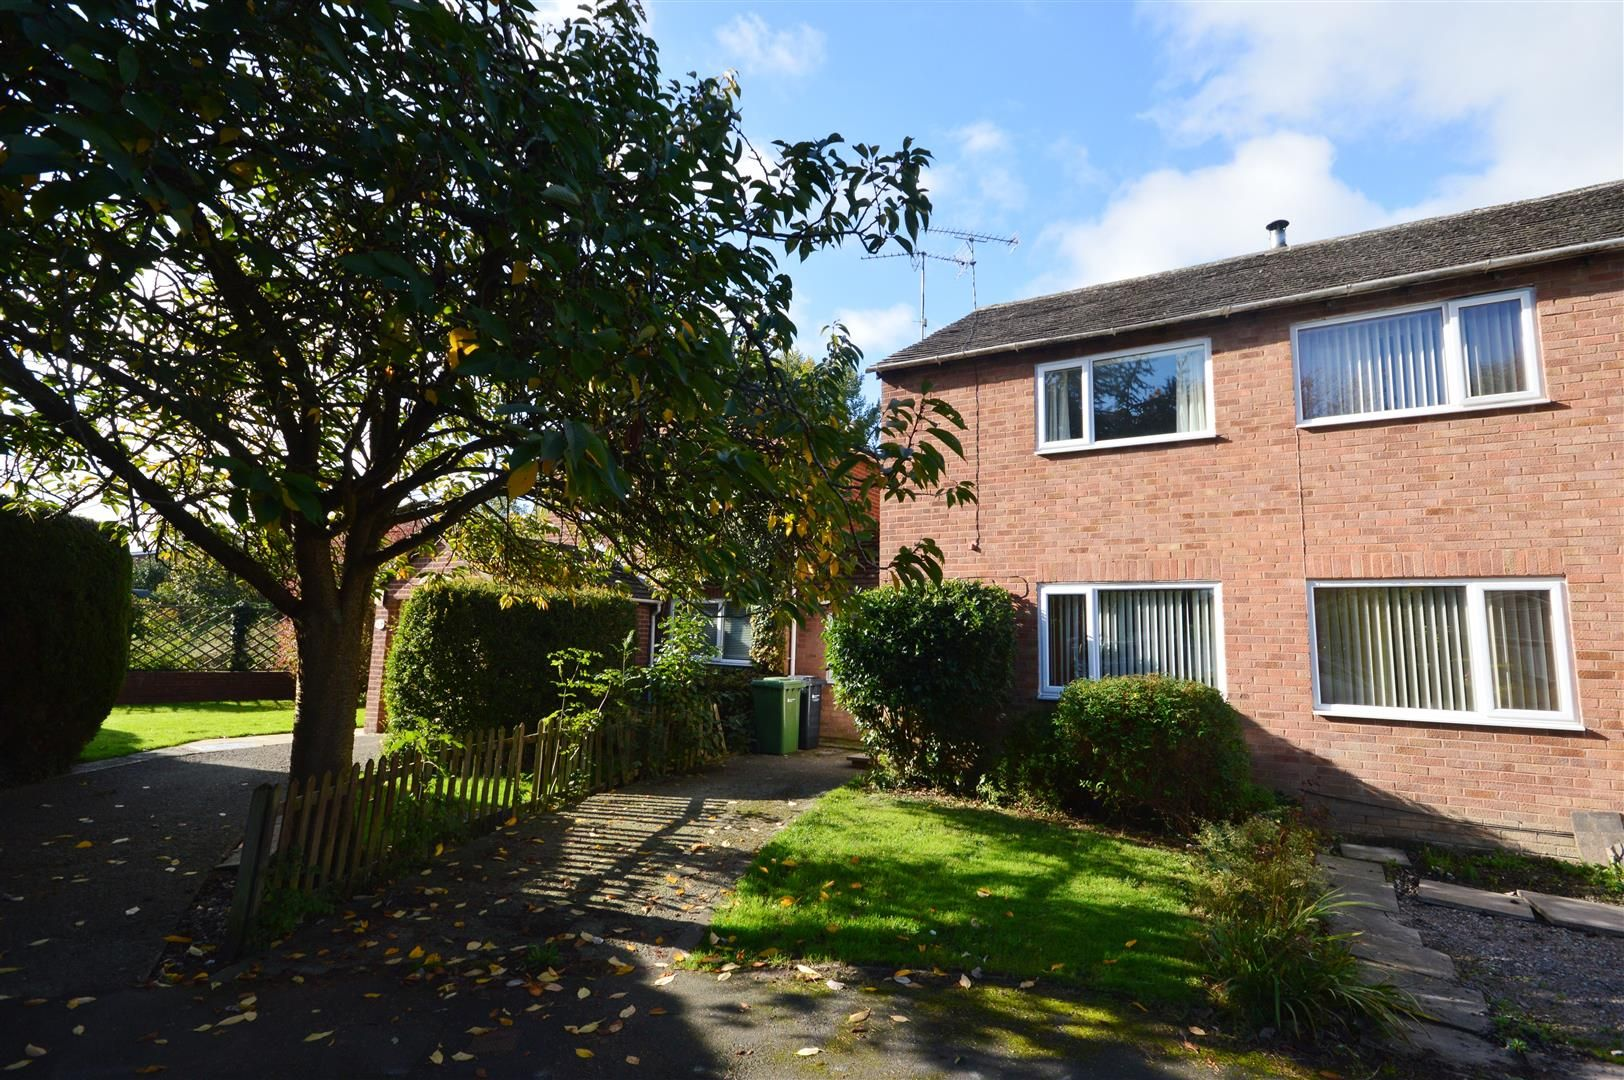 3 bed semi-detached to rent in Leominster  - Property Image 1